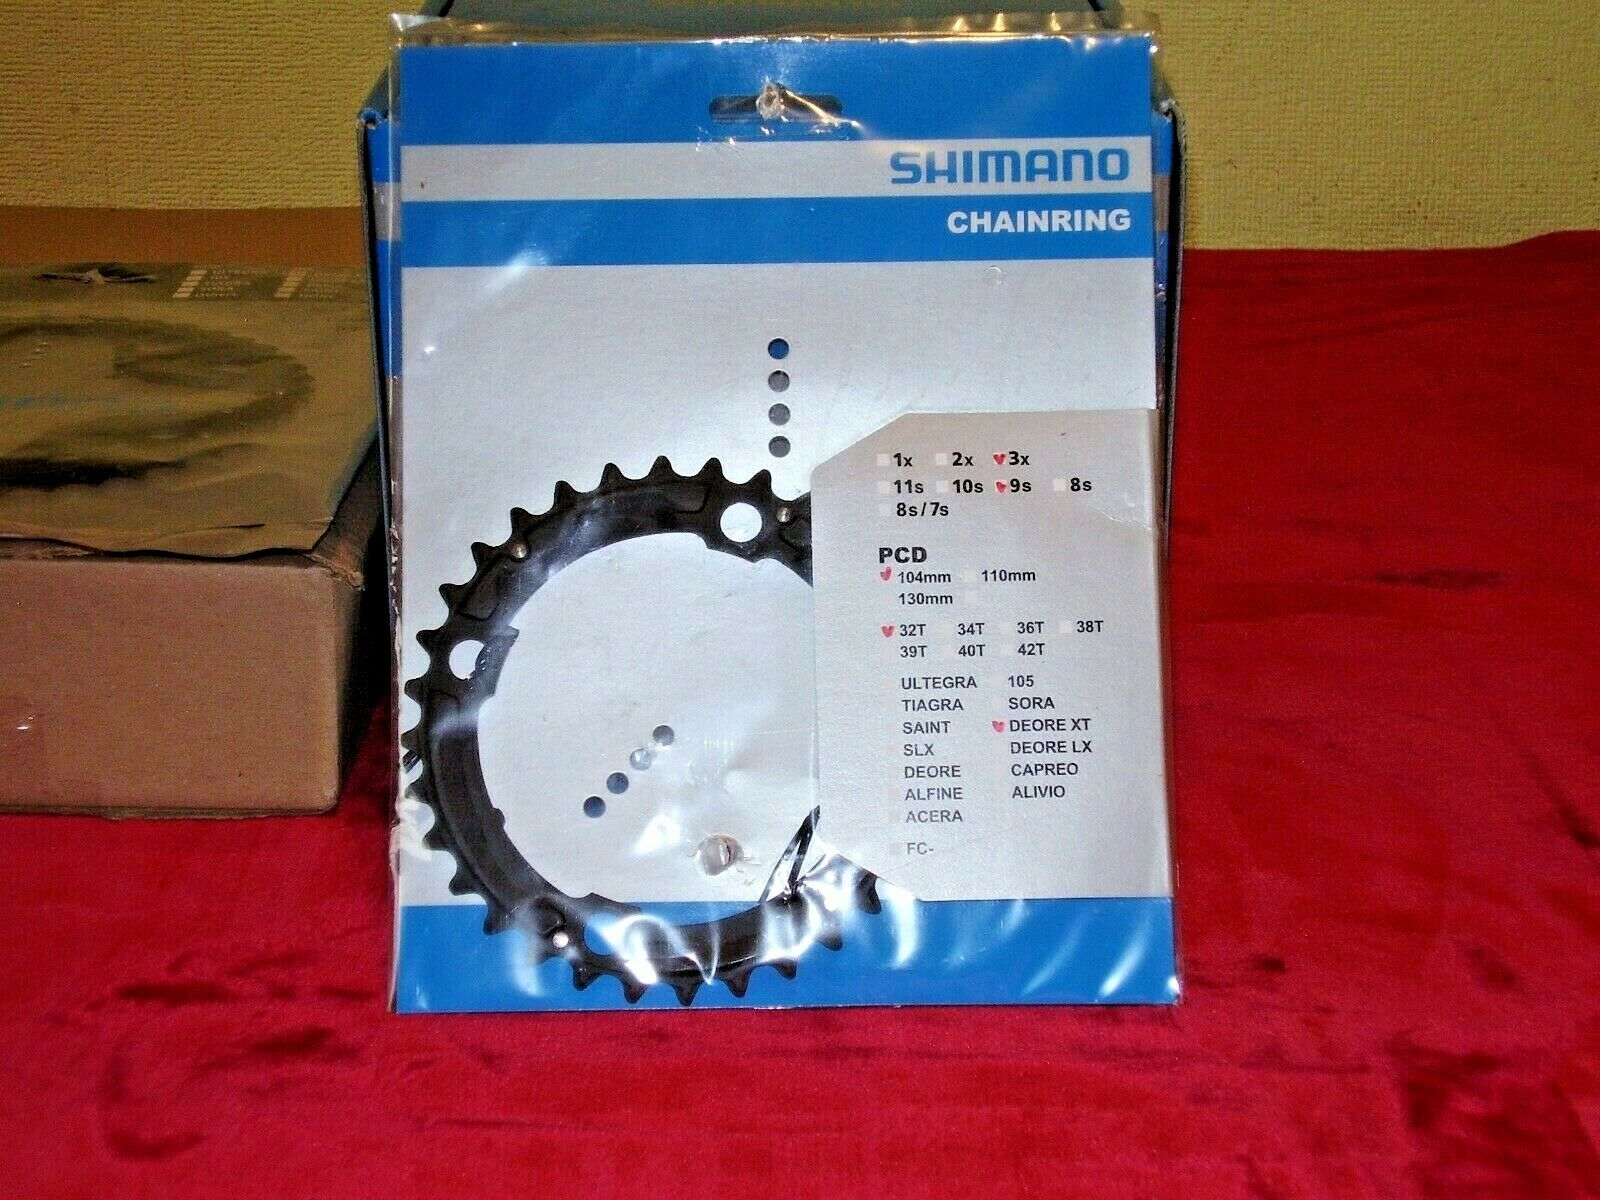 SHIMANO DEORE XT CHAINRINGS.            32T AND 22T.